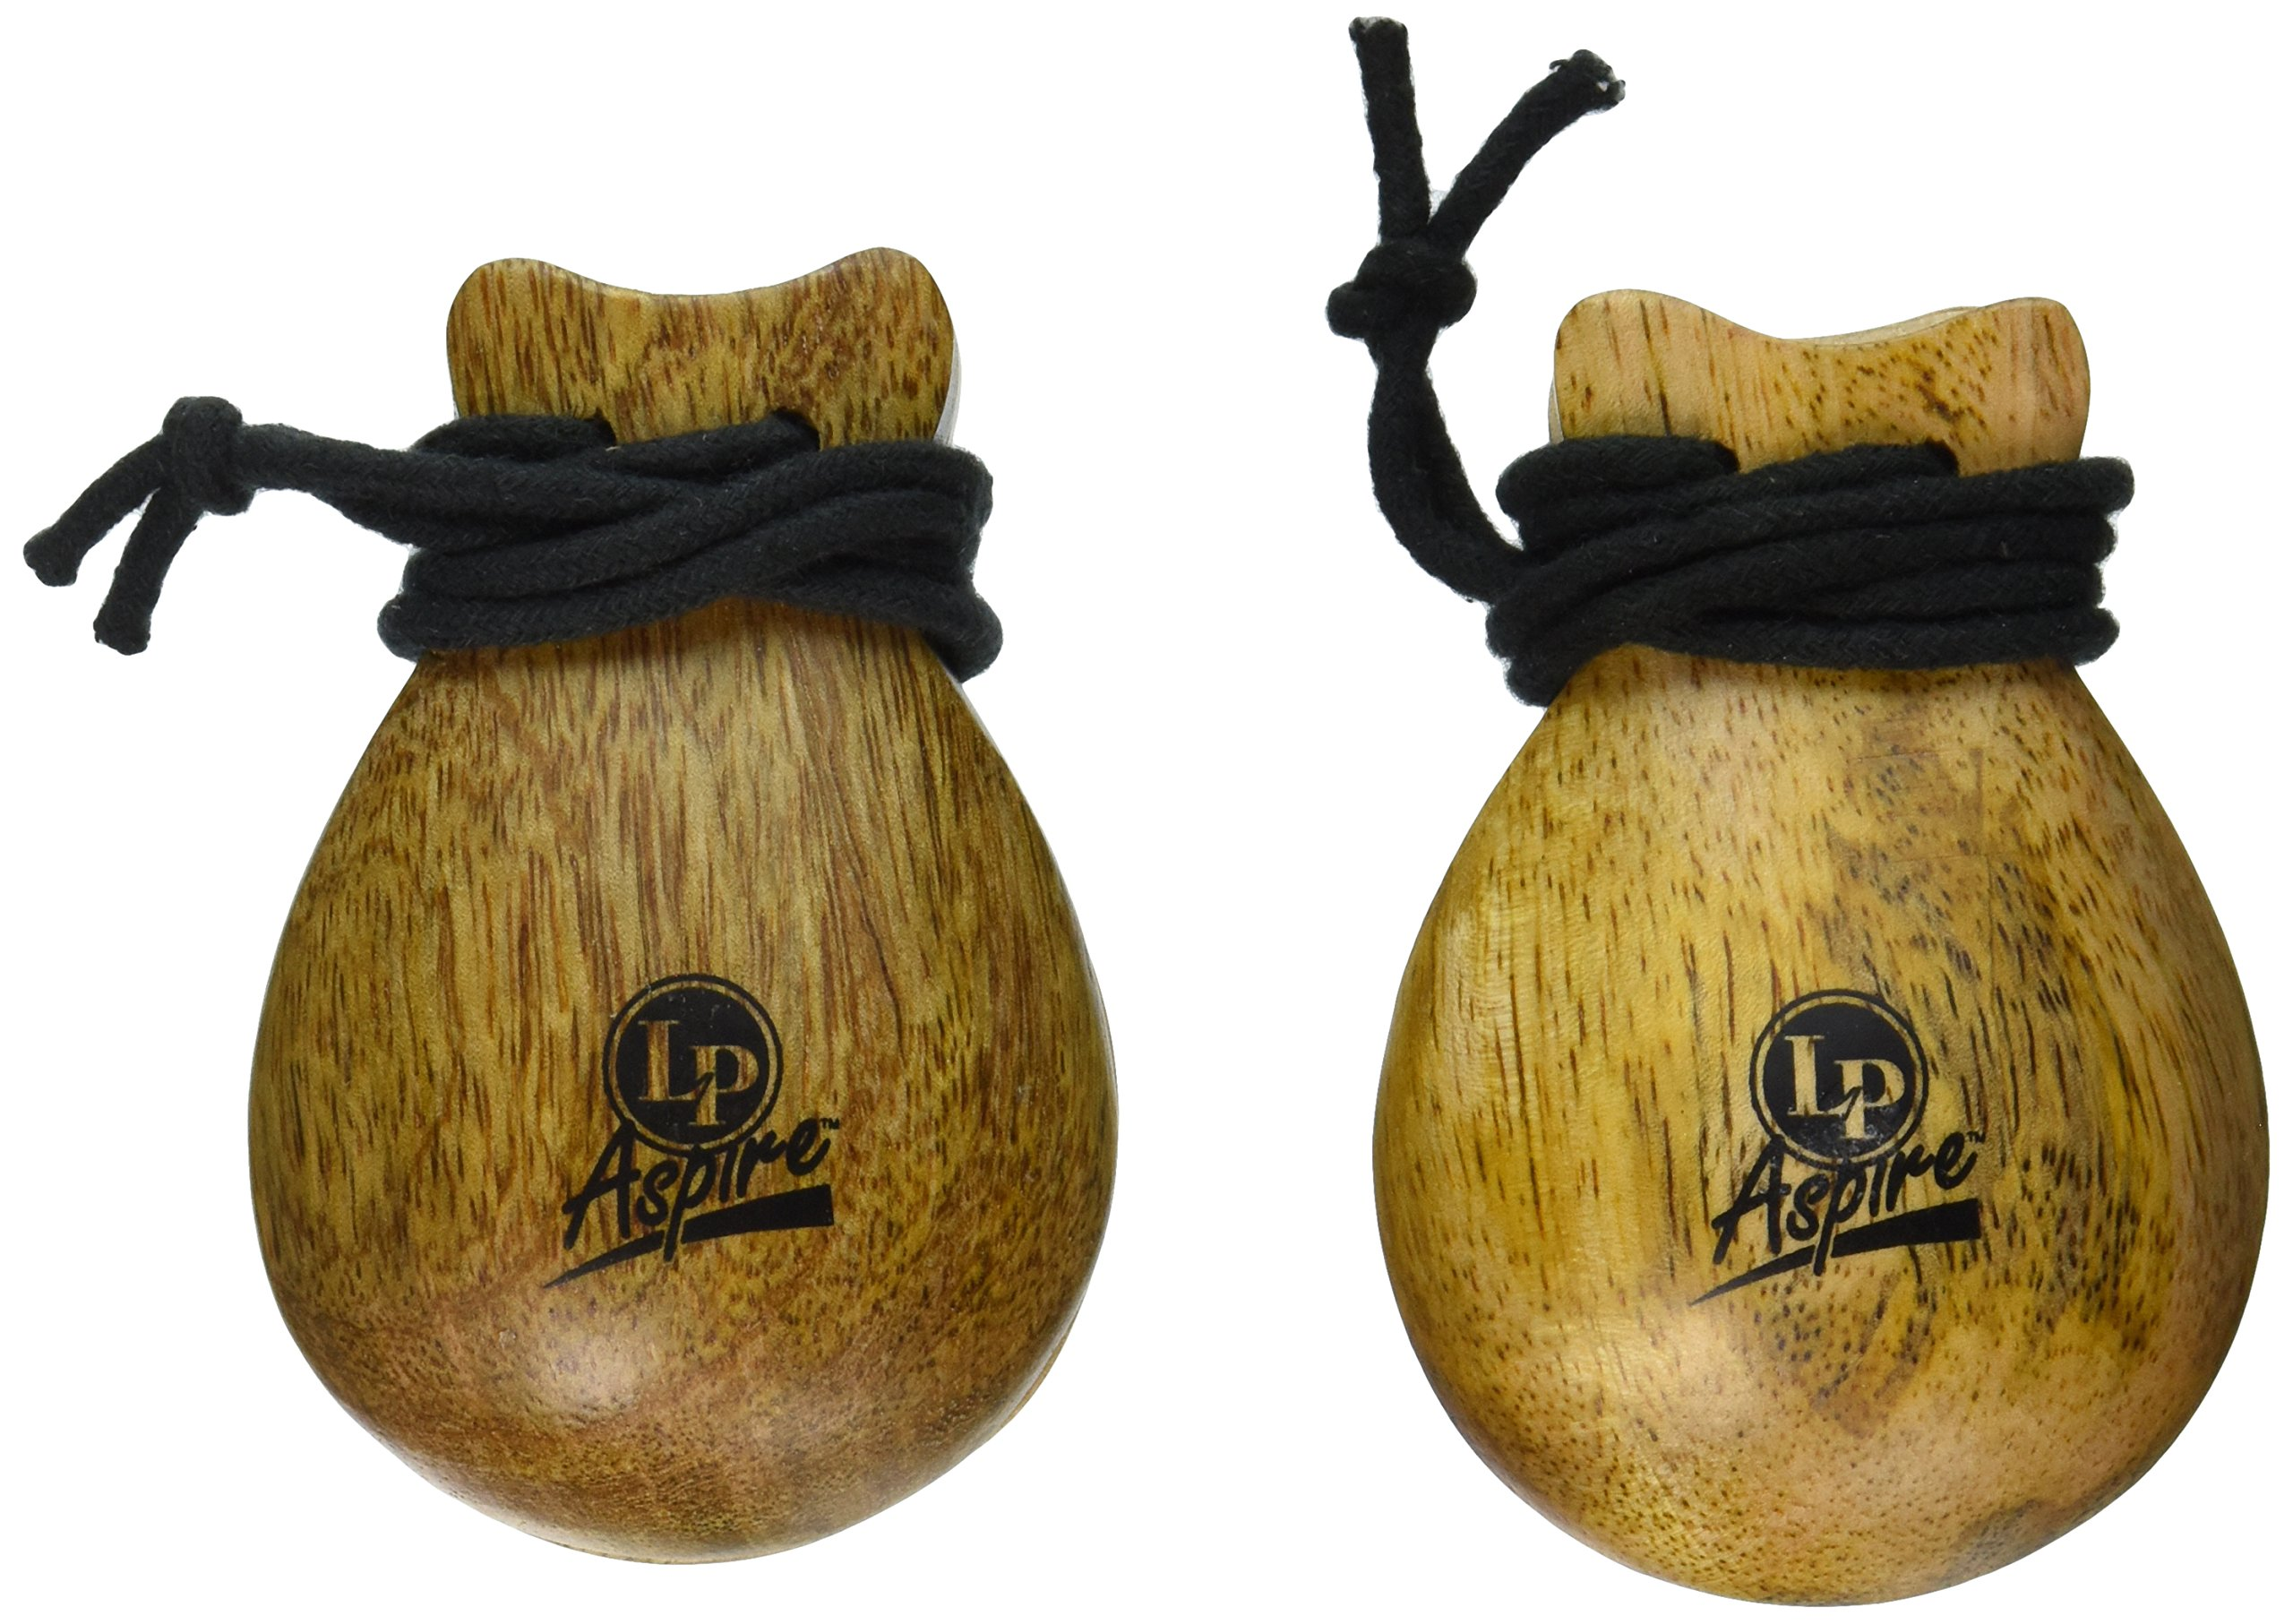 LP Aspire LPA131 Castanets, Hand Held, 2 Pair by Latin Percussion